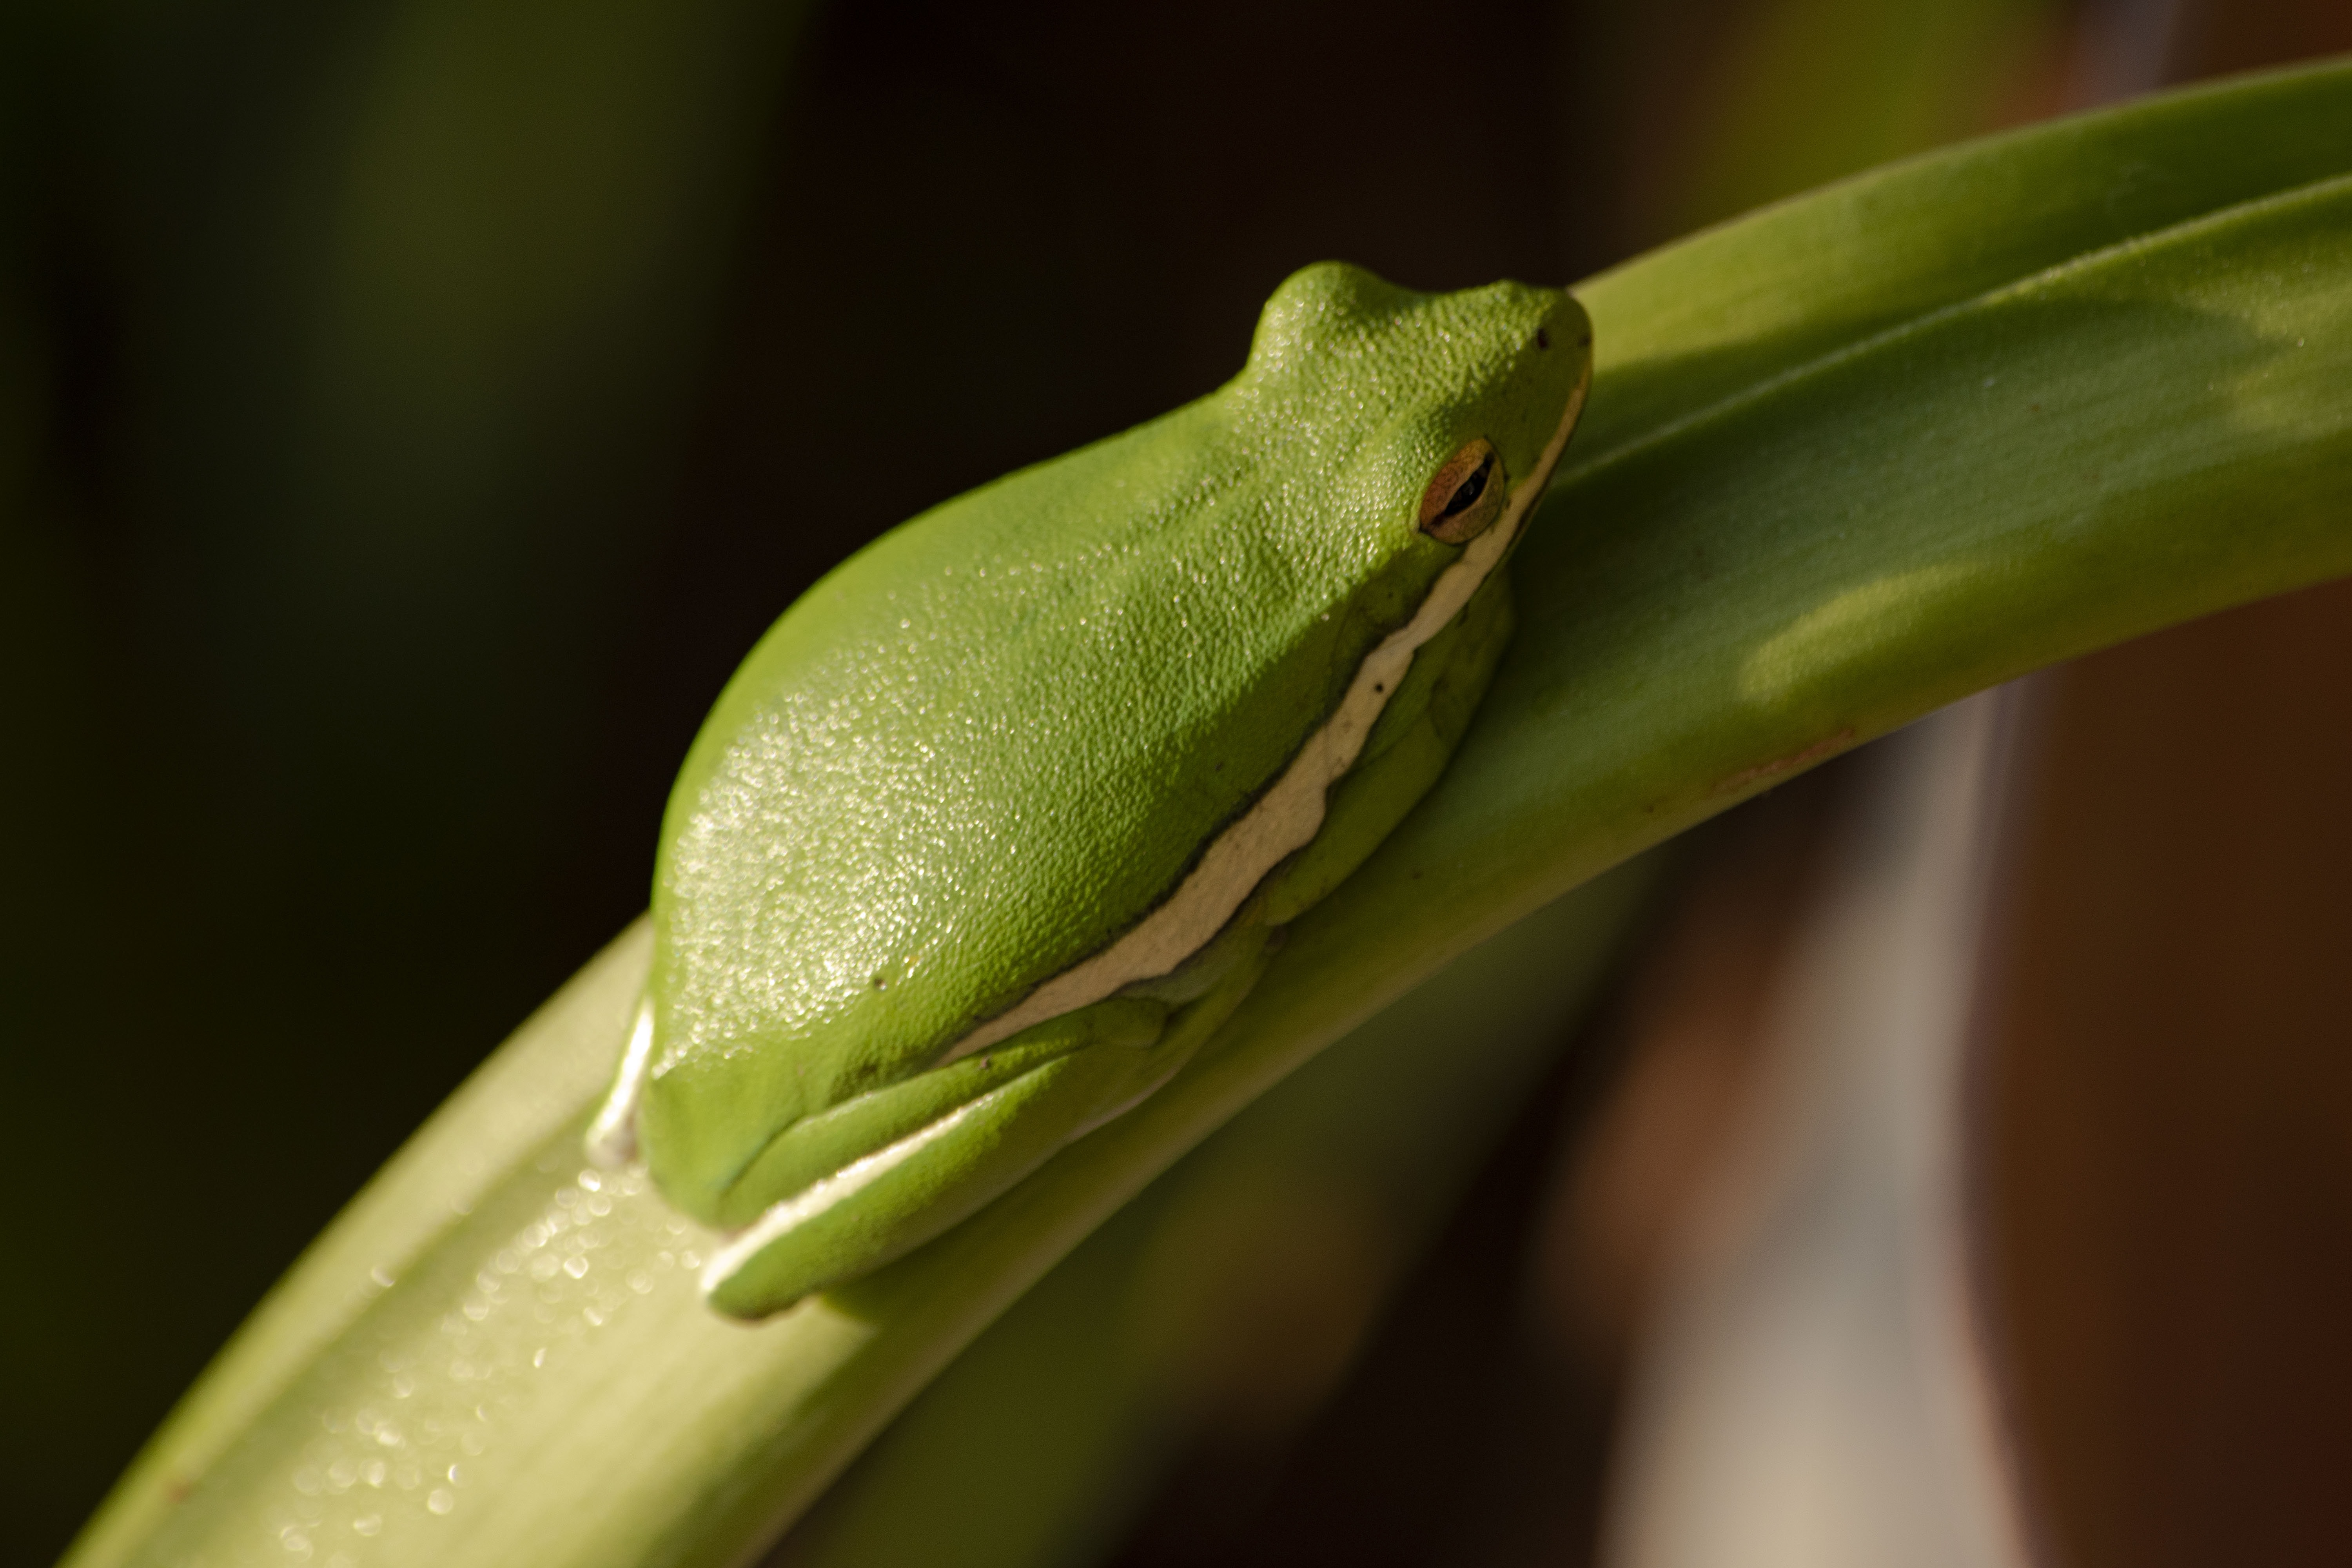 green tree frog on green leaf plant